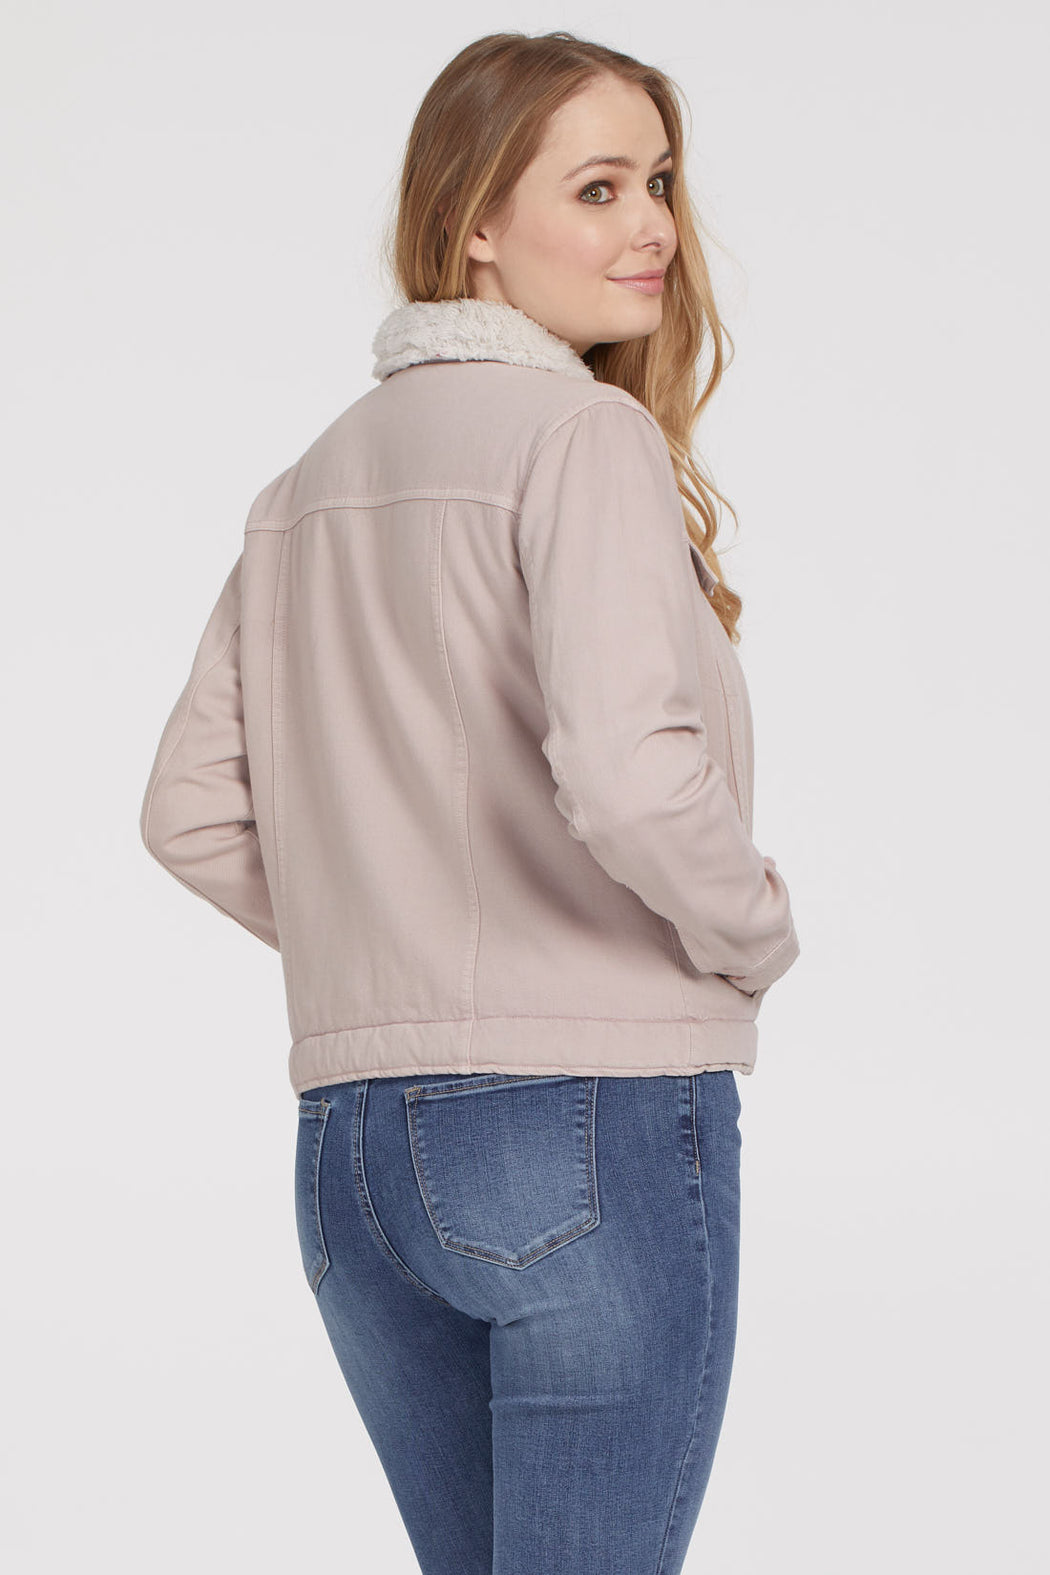 This is the jacket that will get you through fall in style. The thick soft twill jacket with accompanying shearling lining makes any outfit look chic and ensures comfy all-day wear. 51% Cotton 49% Rayon– Cosy shearling lining– Two front breast pockets– Classic collar